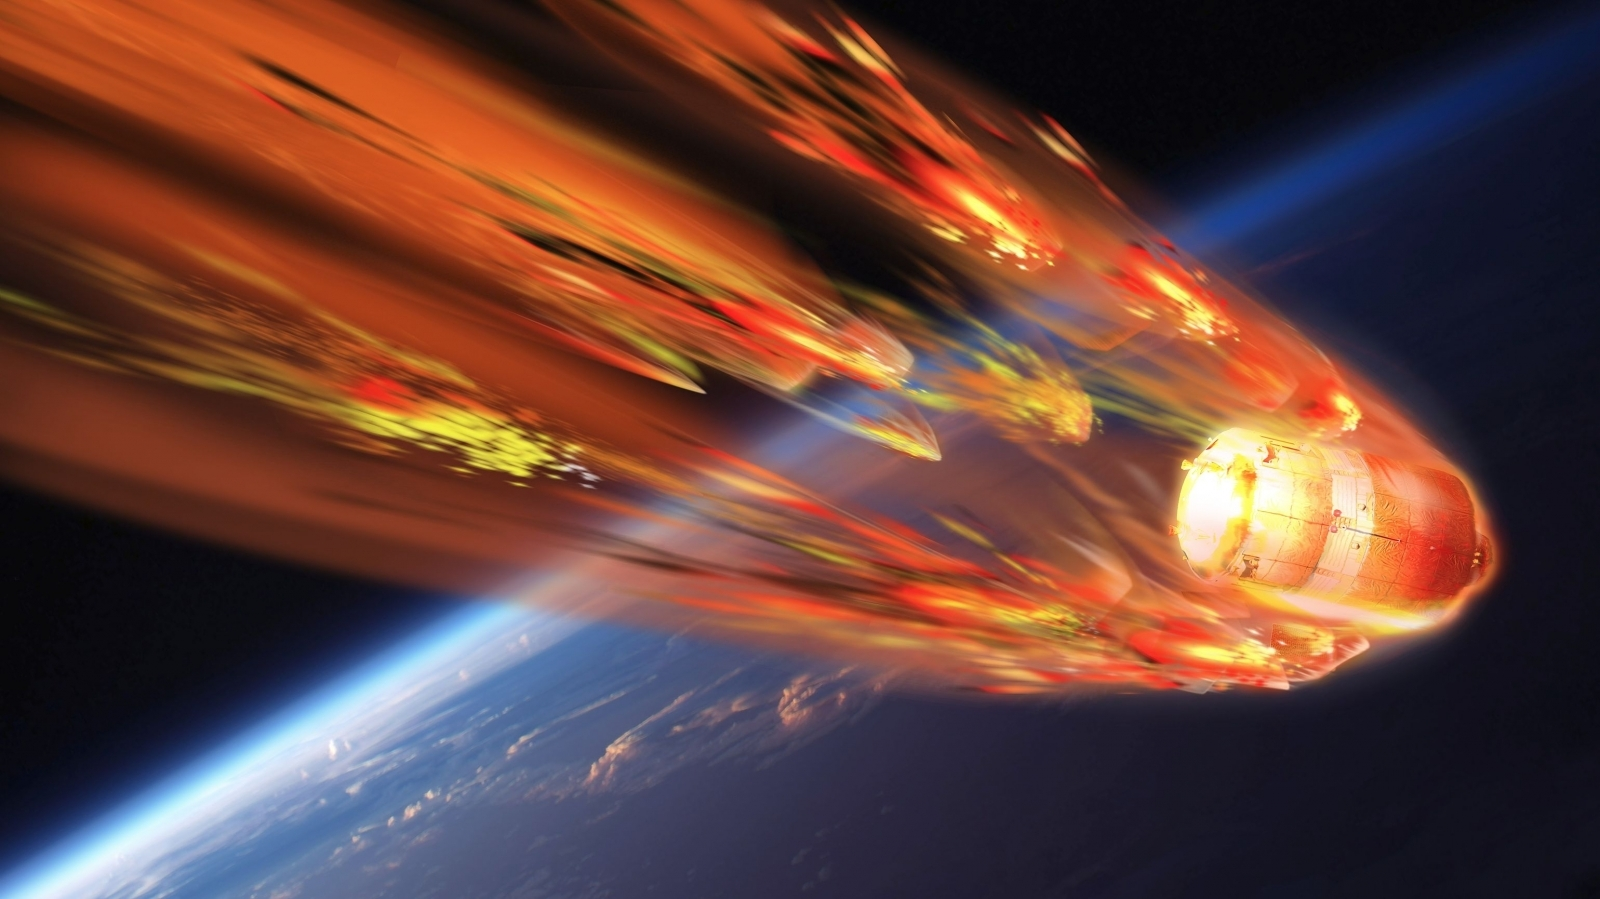 tiangong1 when and where will chinas outofcontrol